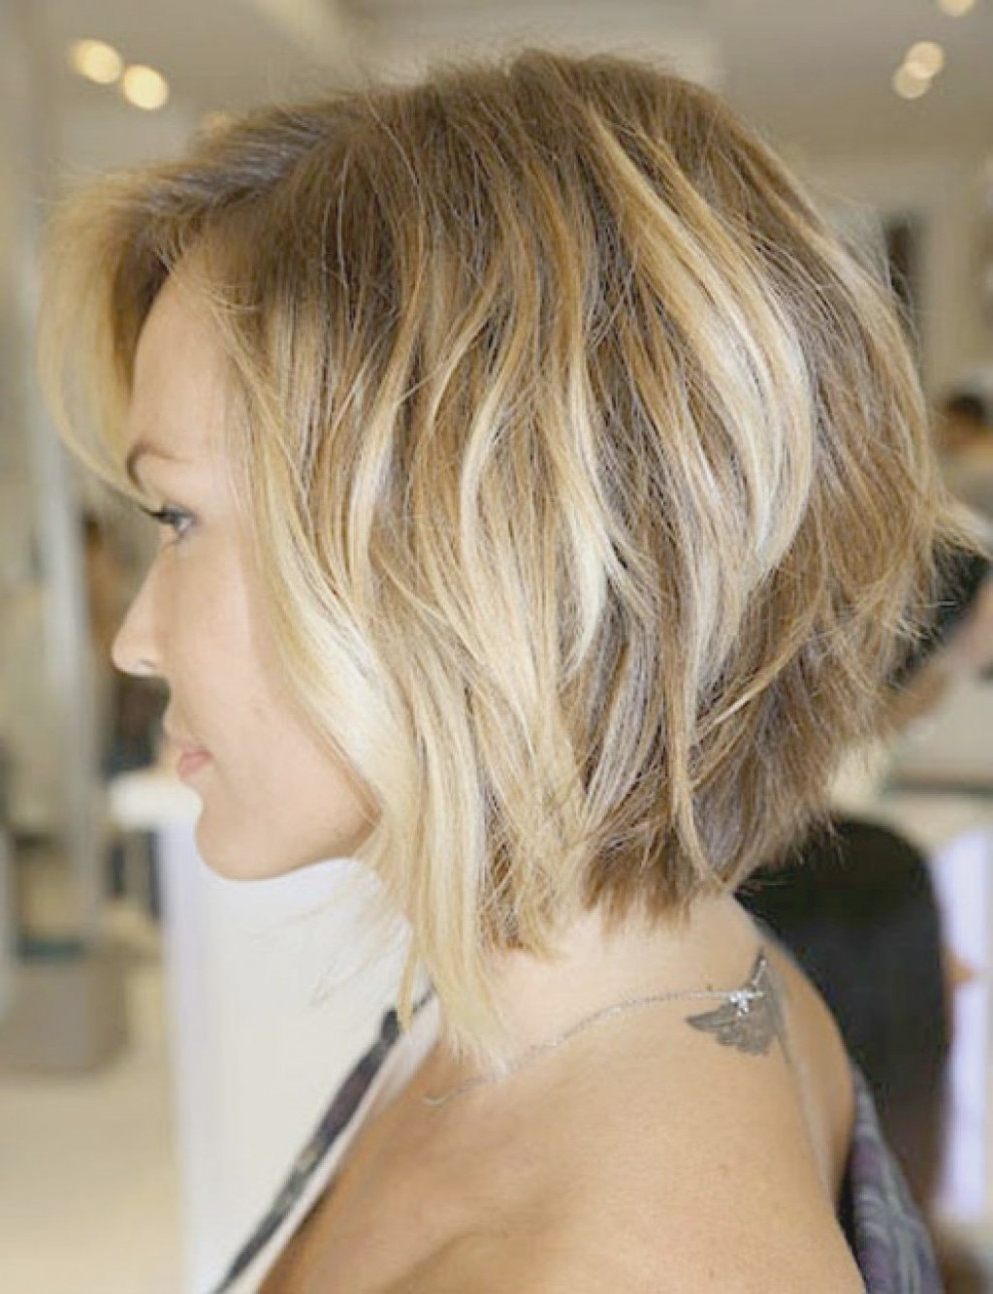 Photo Gallery Of Curly Angled Blonde Bob Hairstyles Viewing 11 Of